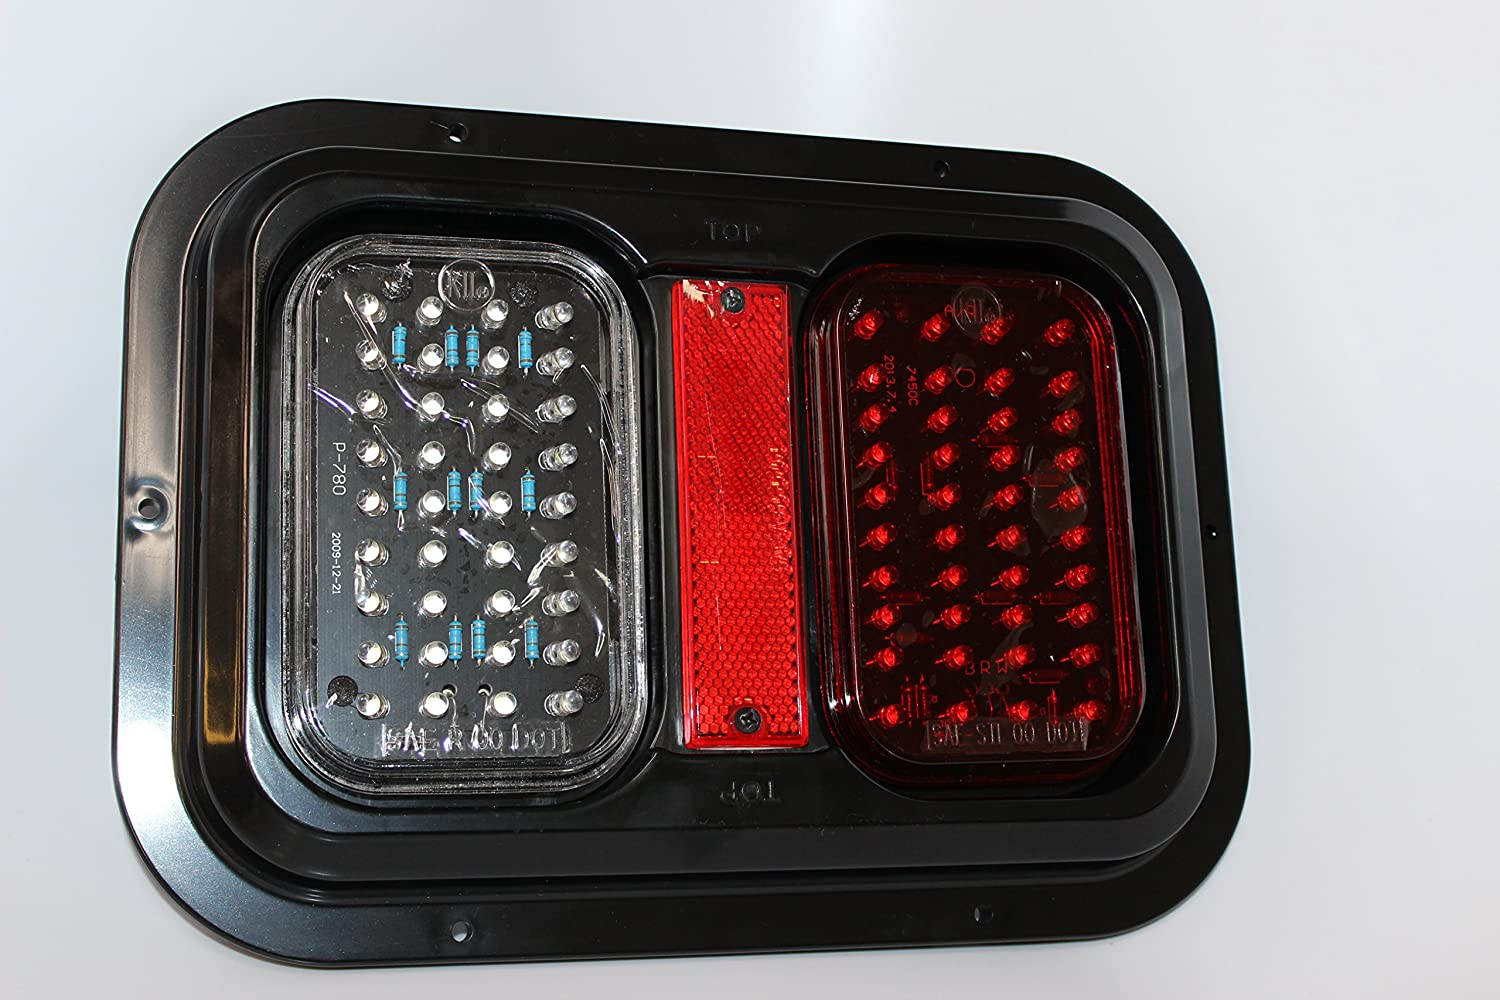 Kaper II L15-0089WH Red Trailer Stop/Turn/Tail Light Lights & Lighting Accessories Tail Lights